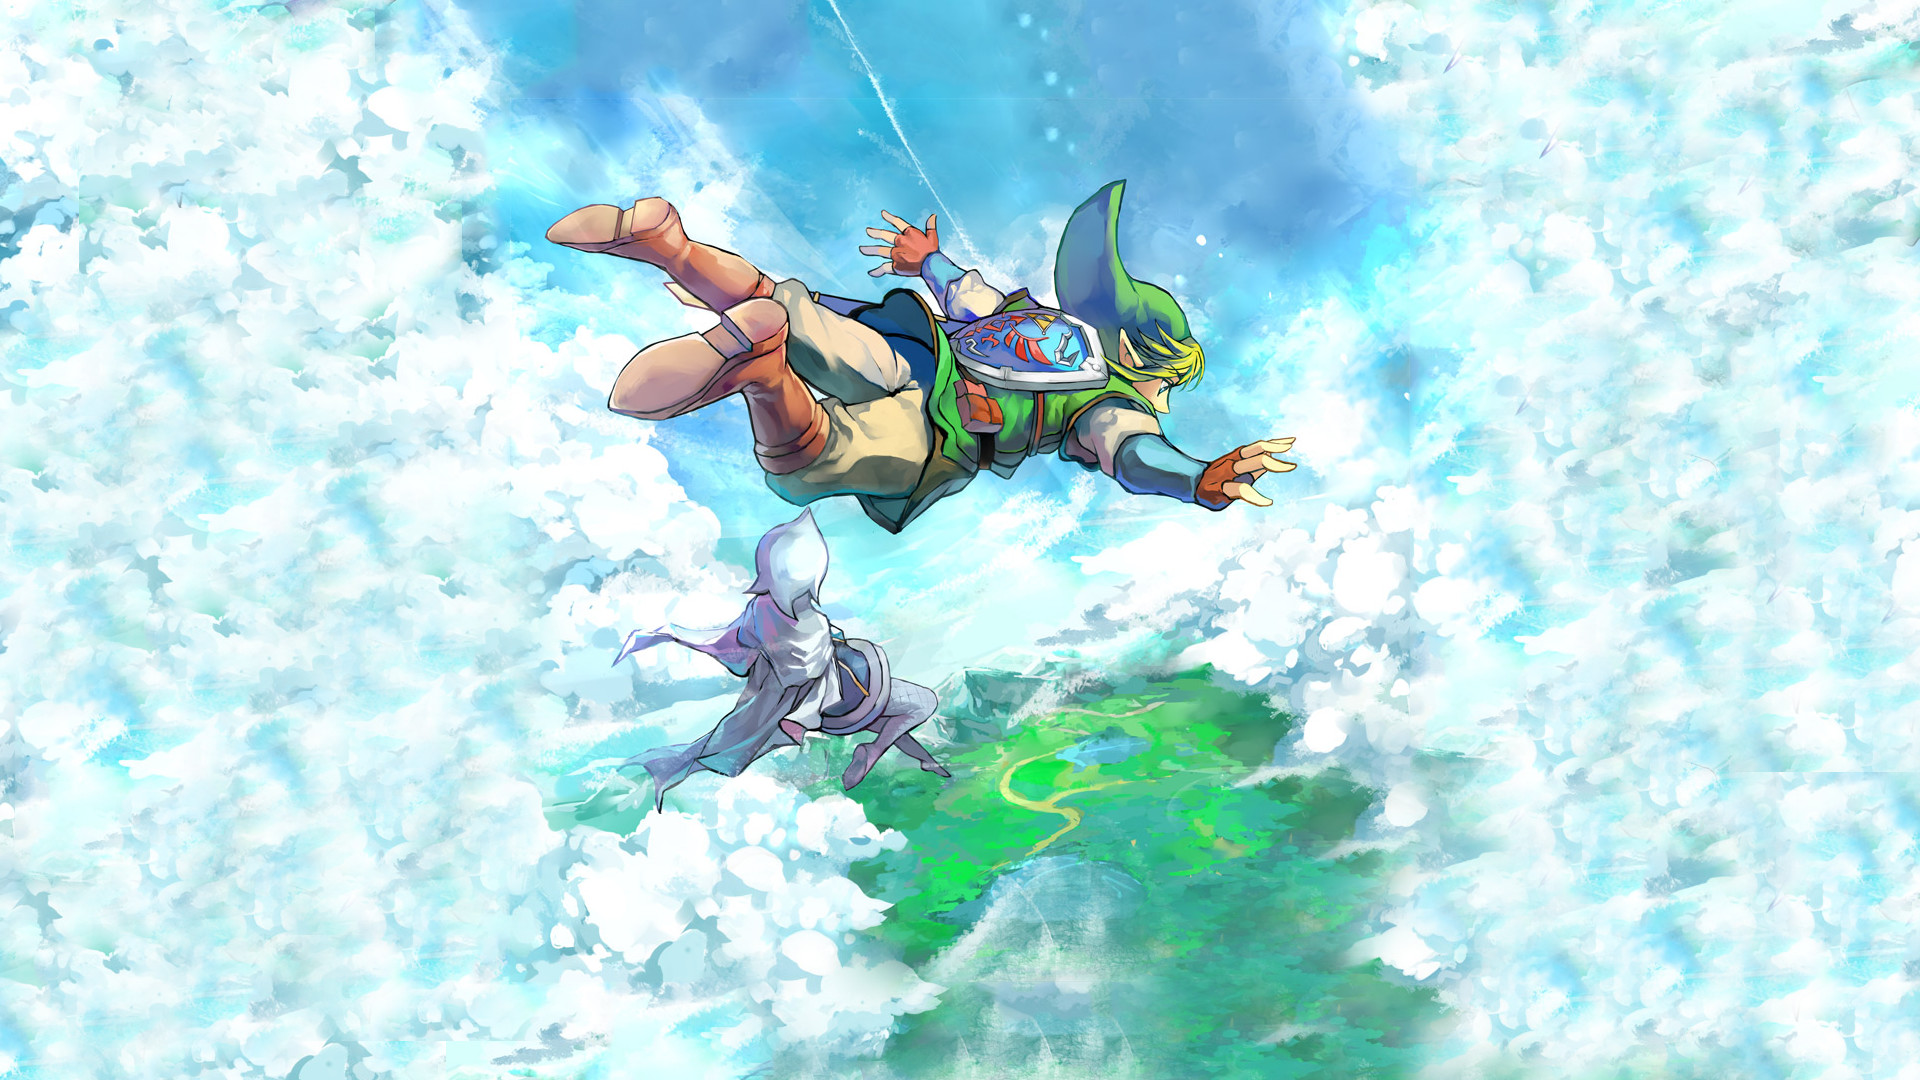 1920x1080 Video Game - The Legend Of Zelda: Skyward Sword Wallpaper